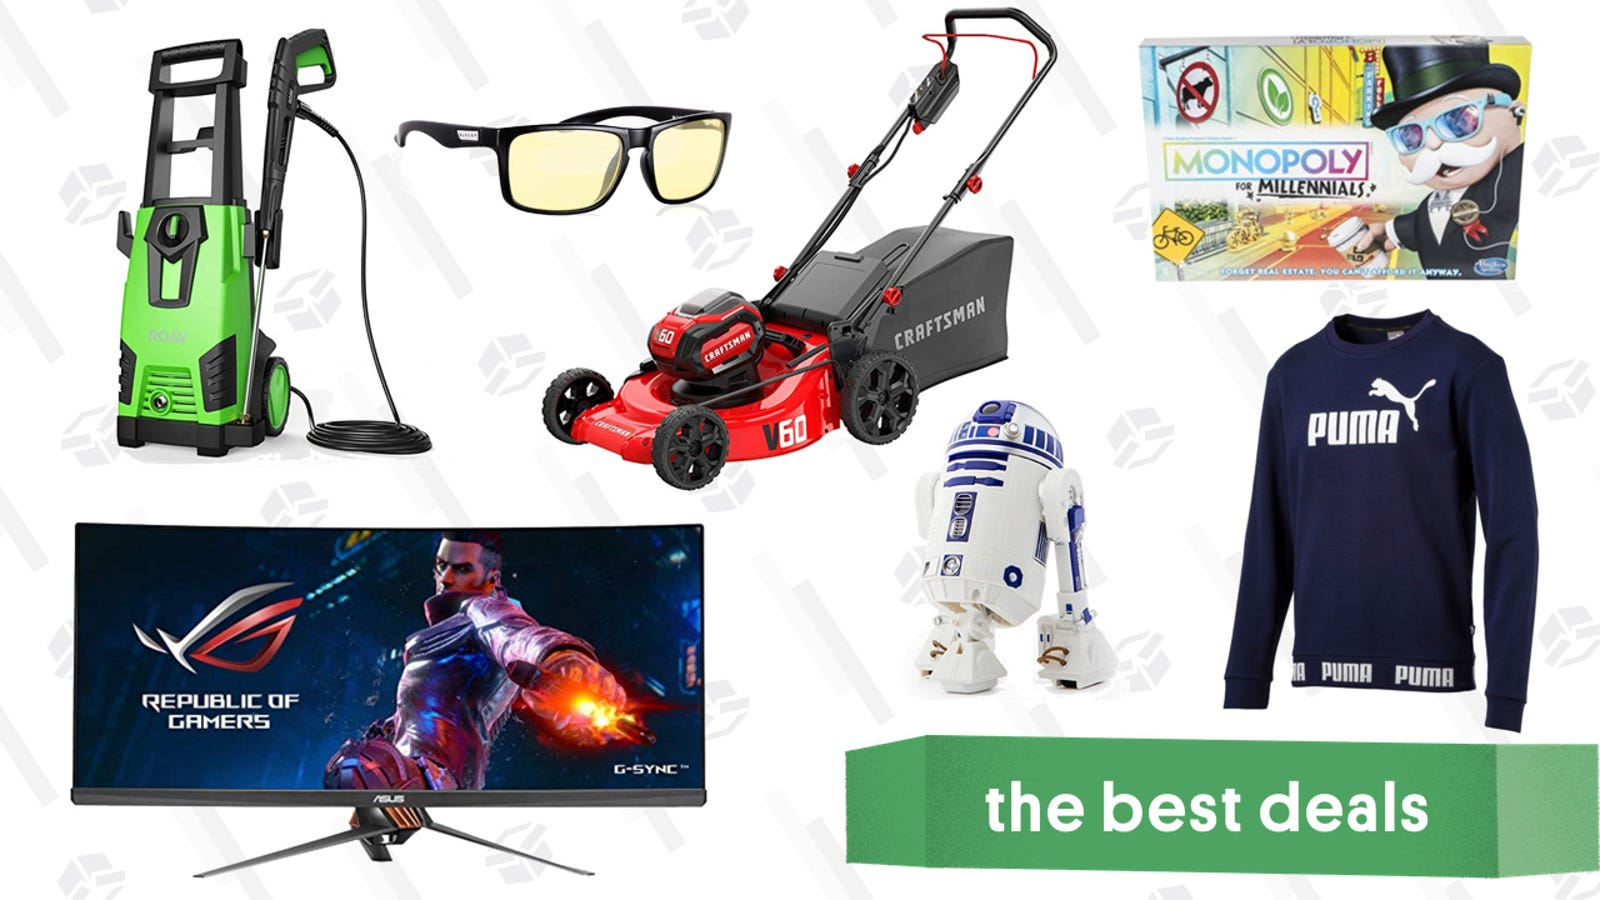 Thursday's Best Deals: Anker Electric Lawn Tools, Monopoly for Millennials, Instant Pot, and More